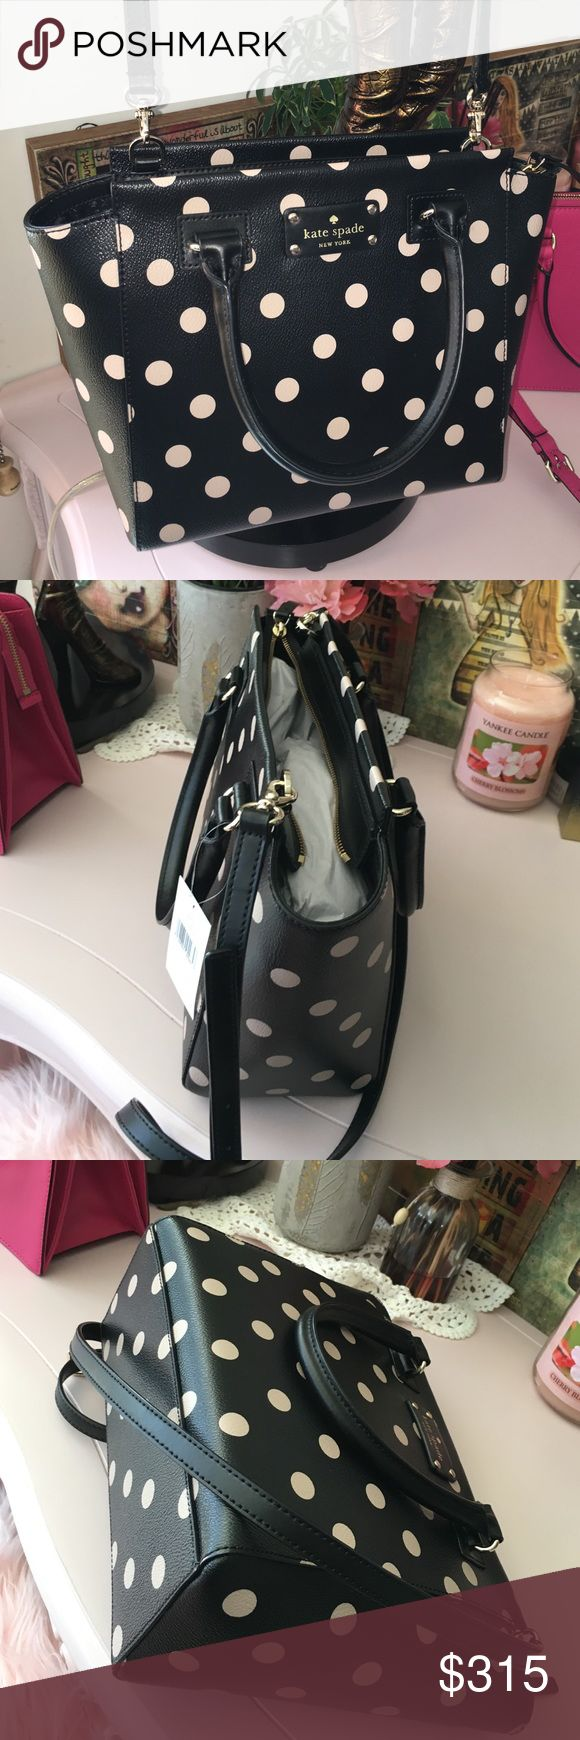 Kate Spade Camryn Wellesley Polka Dot Leather Kate Spade Small Camryn in black/dcobge Leather nwt $328 kate spade Bags Shoulder Bags